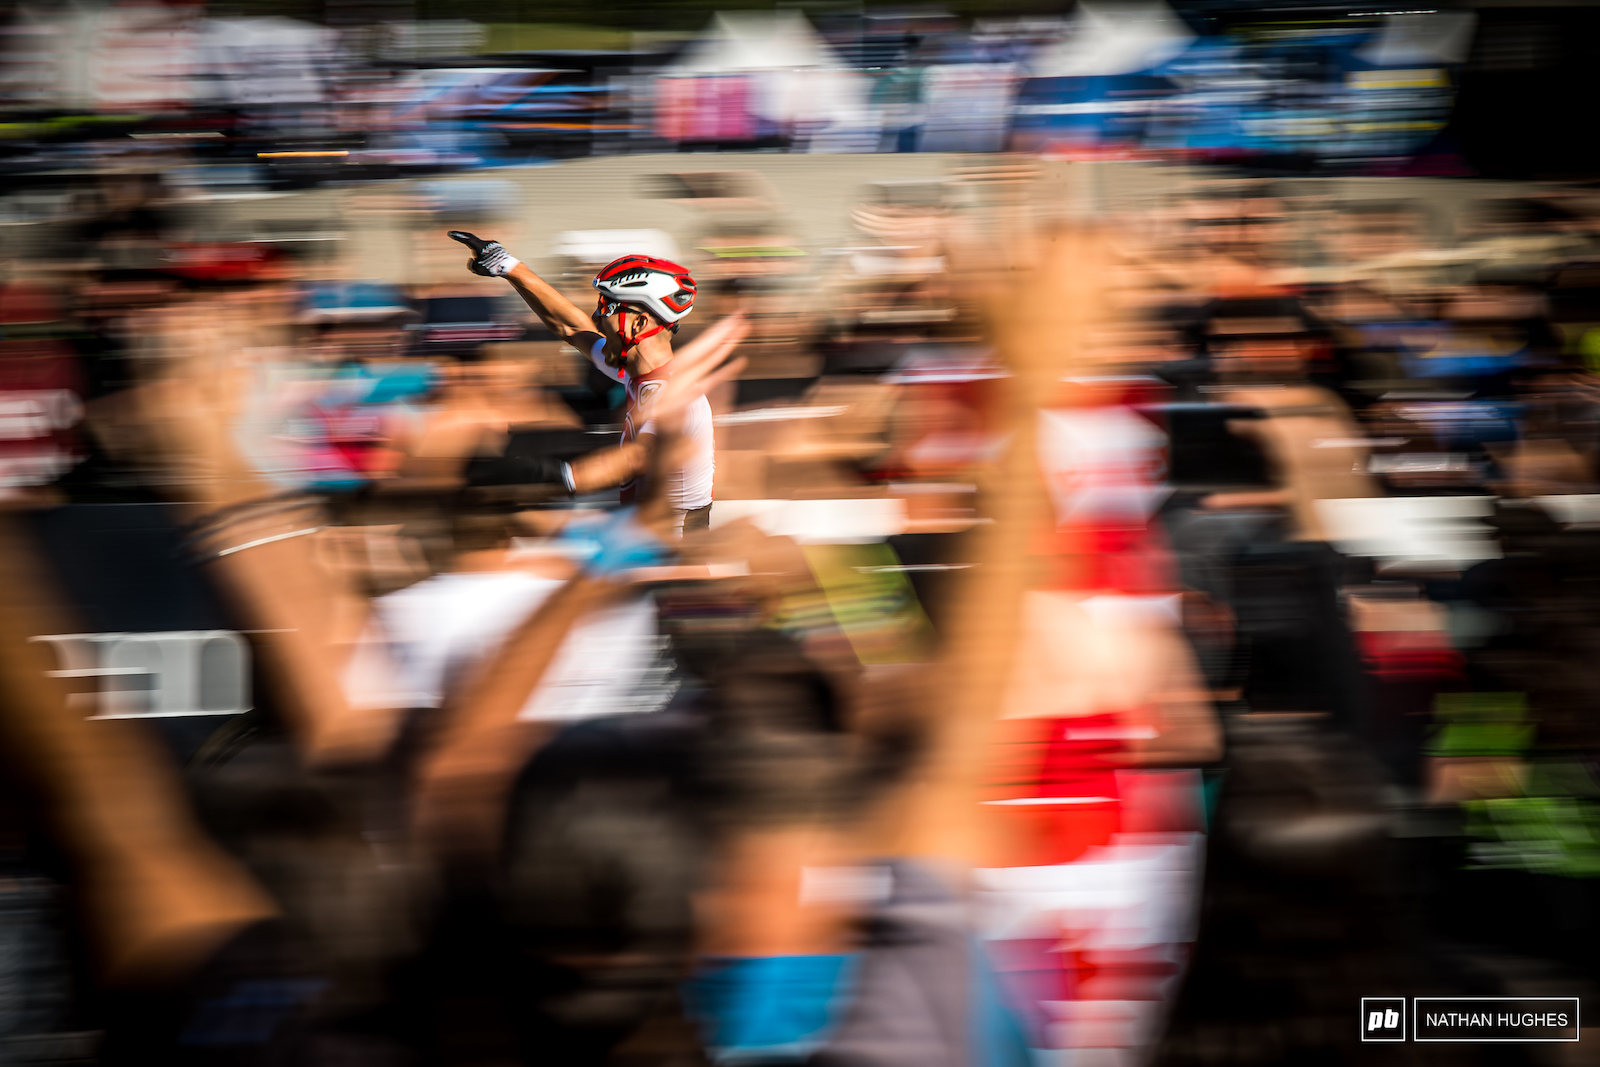 Nino celebrating before the line en route to becoming World Champ just one more time last season in MSA.